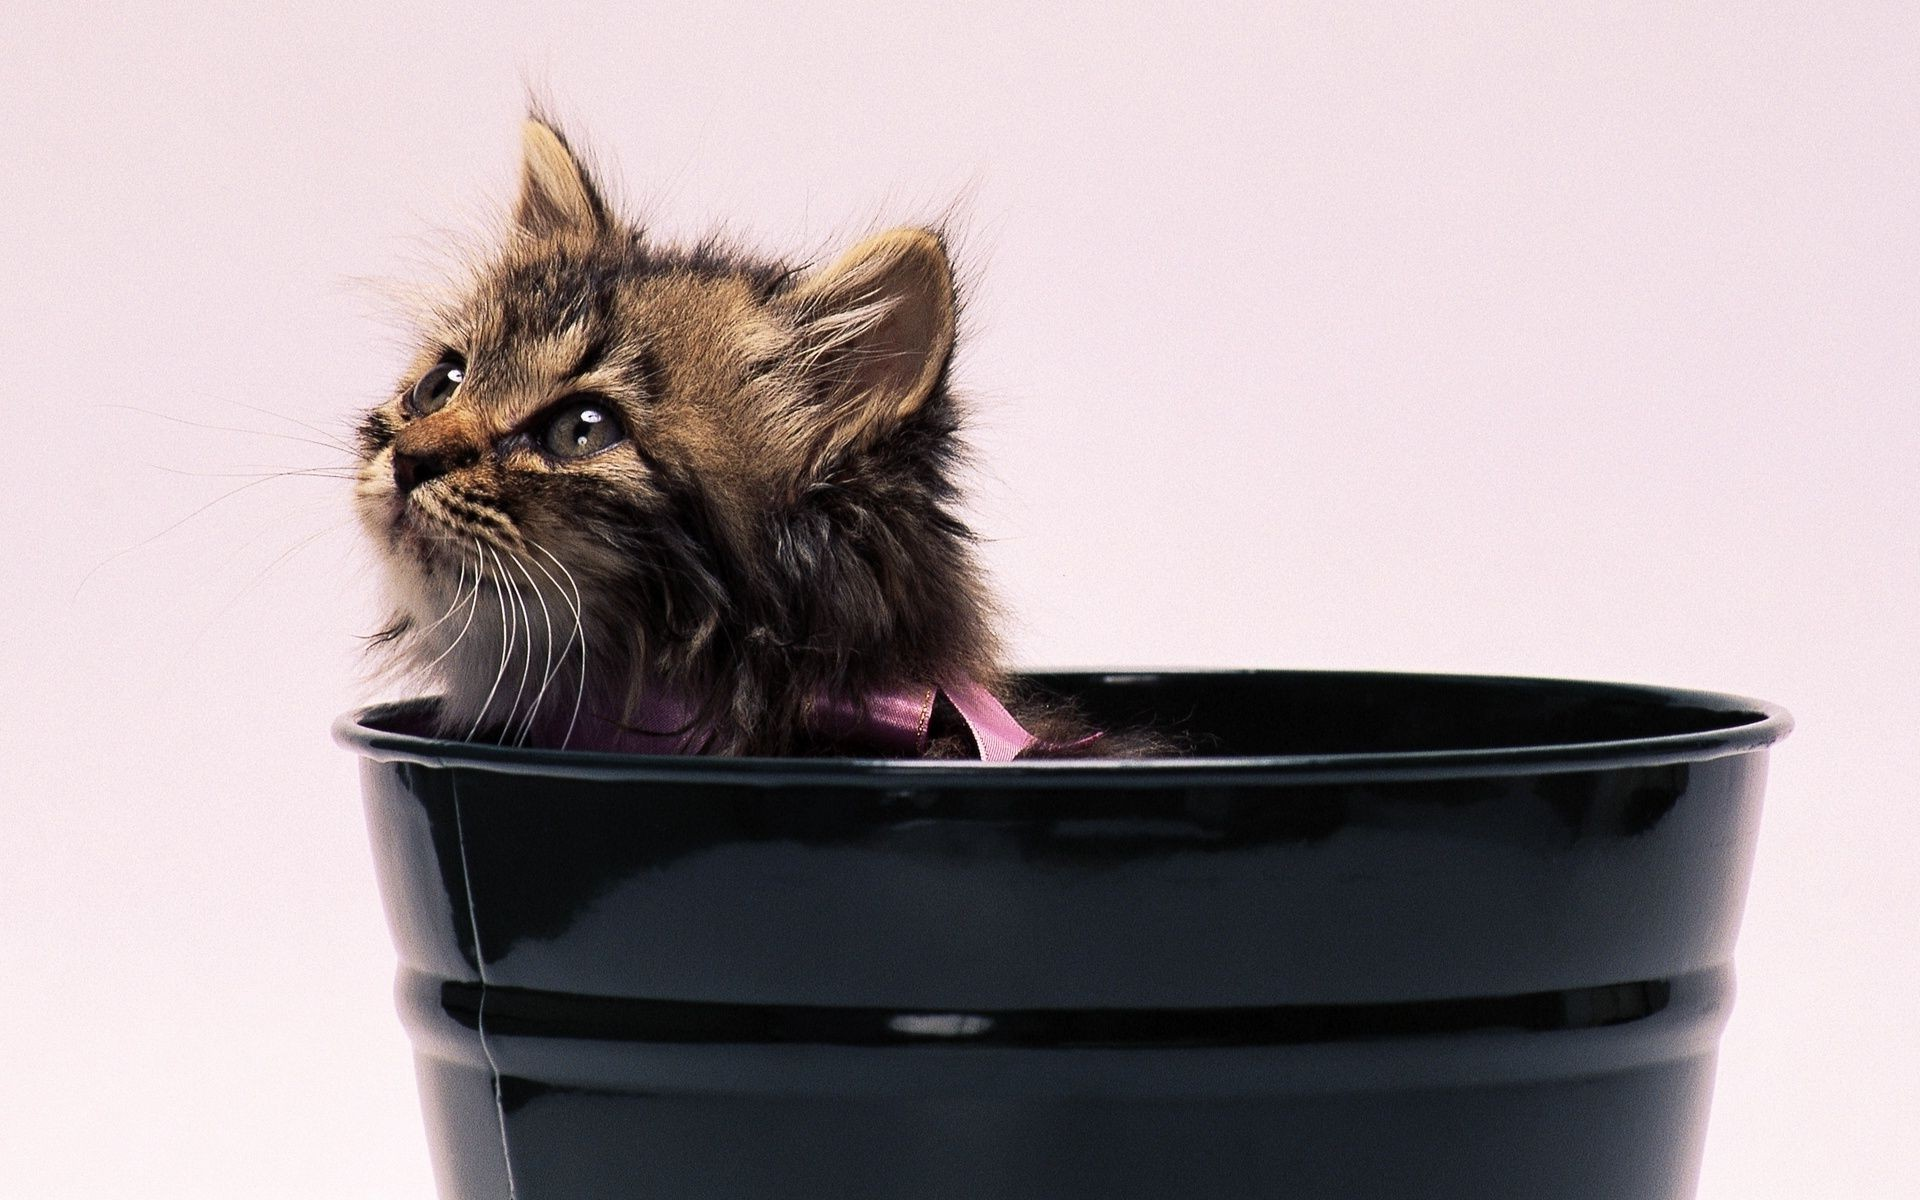 striped kitten emerges from a pot